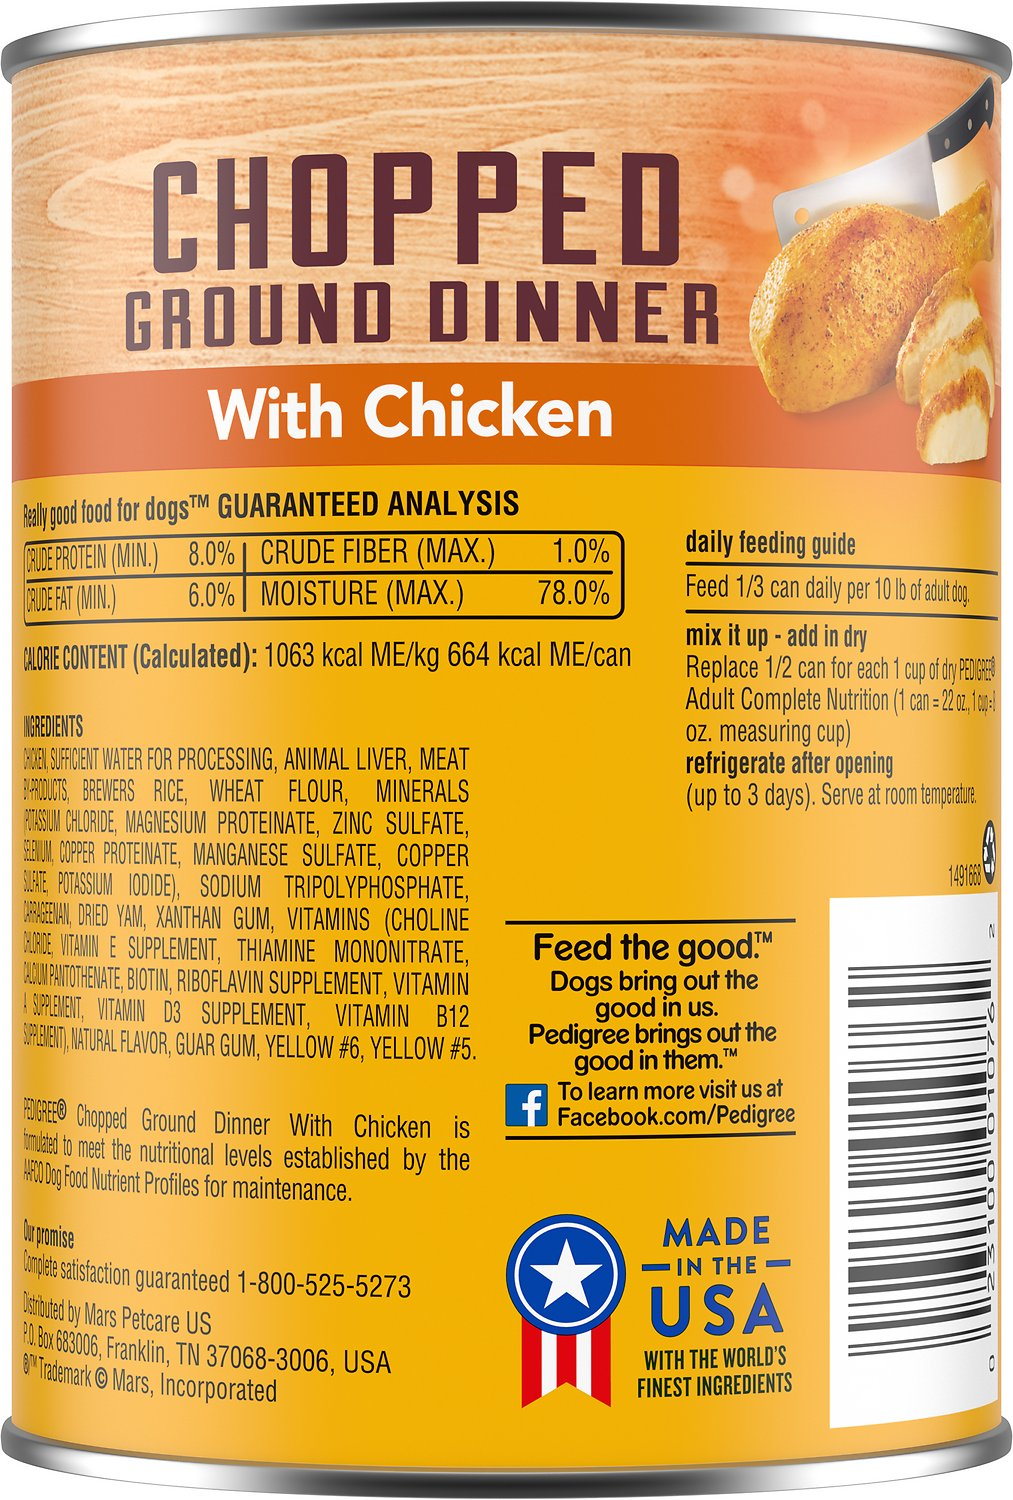 Pedigree Chopped Ground Dinner With Chicken Canned Dog Food 22 Oz